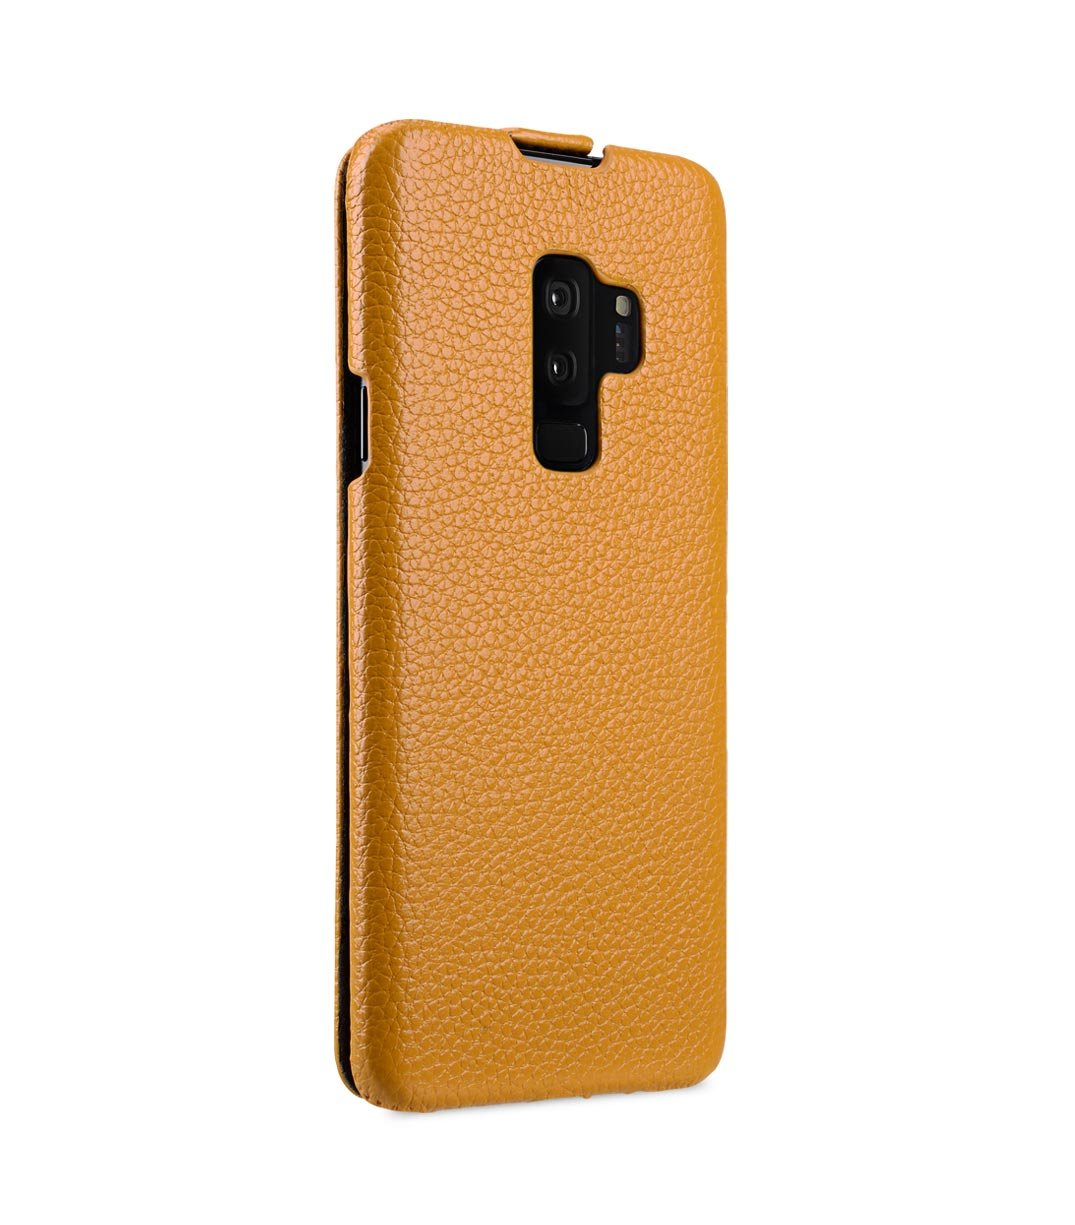 Green LC Jacka Type Melkco Premium Cow Leather Flip Down Vertical with Buckle Closure and Handmade for Samsung Galaxy S9 Case